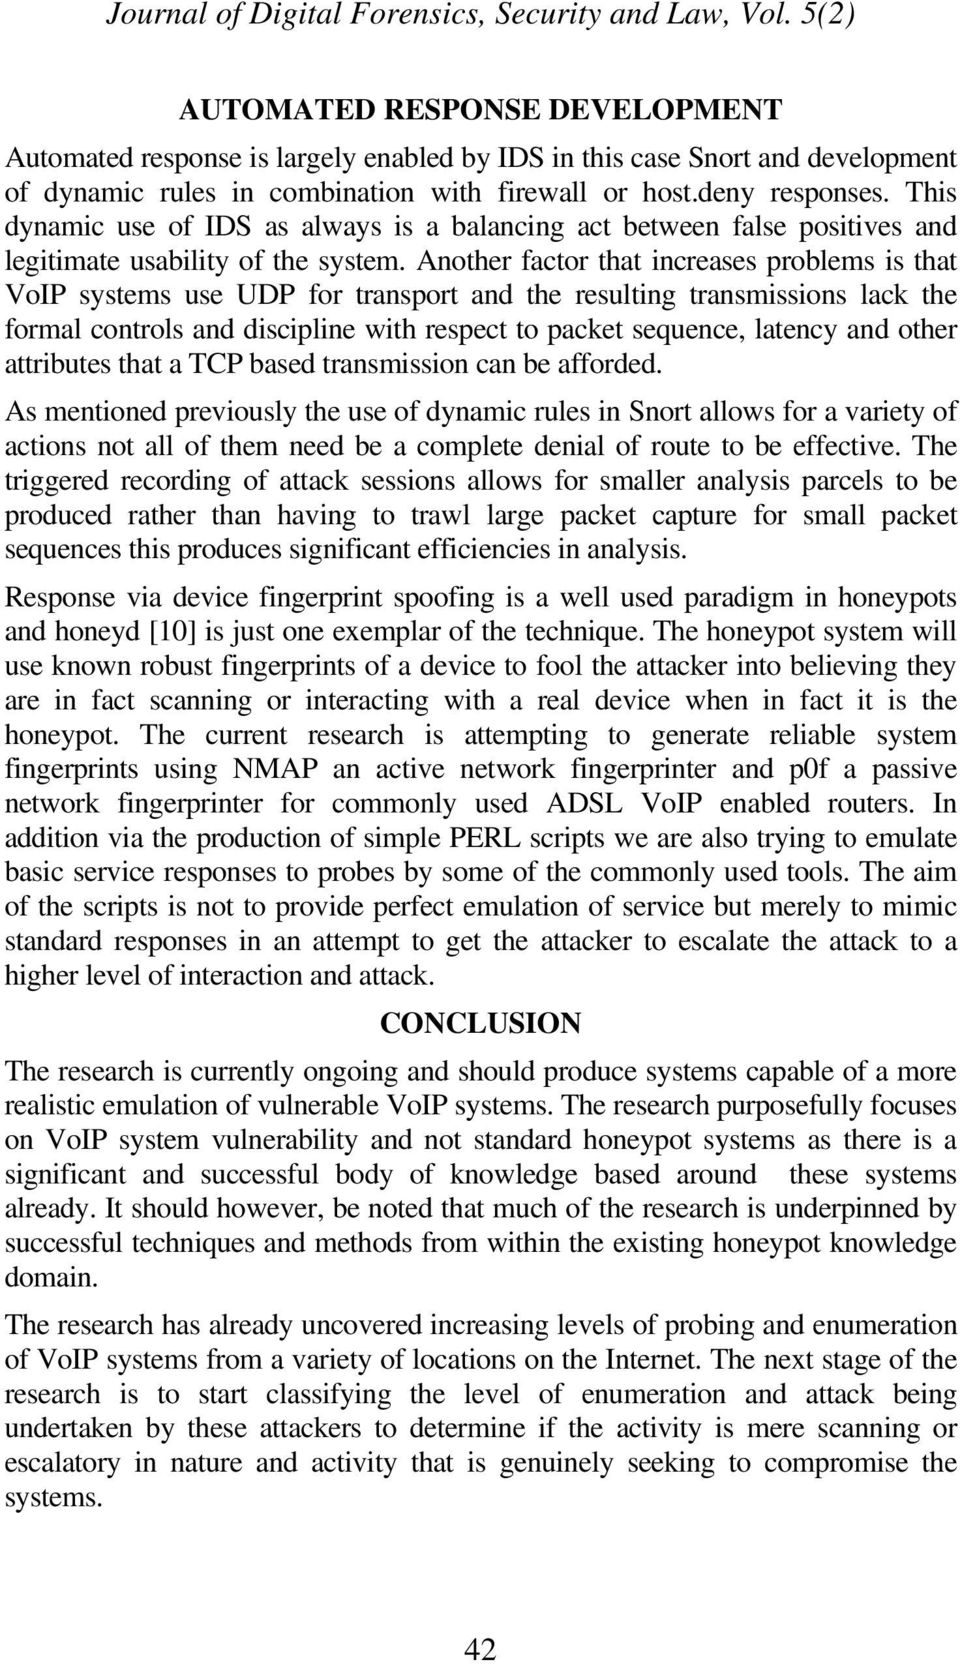 Another factor that increases problems is that VoIP systems use UDP for transport and the resulting transmissions lack the formal controls and discipline with respect to packet sequence, latency and